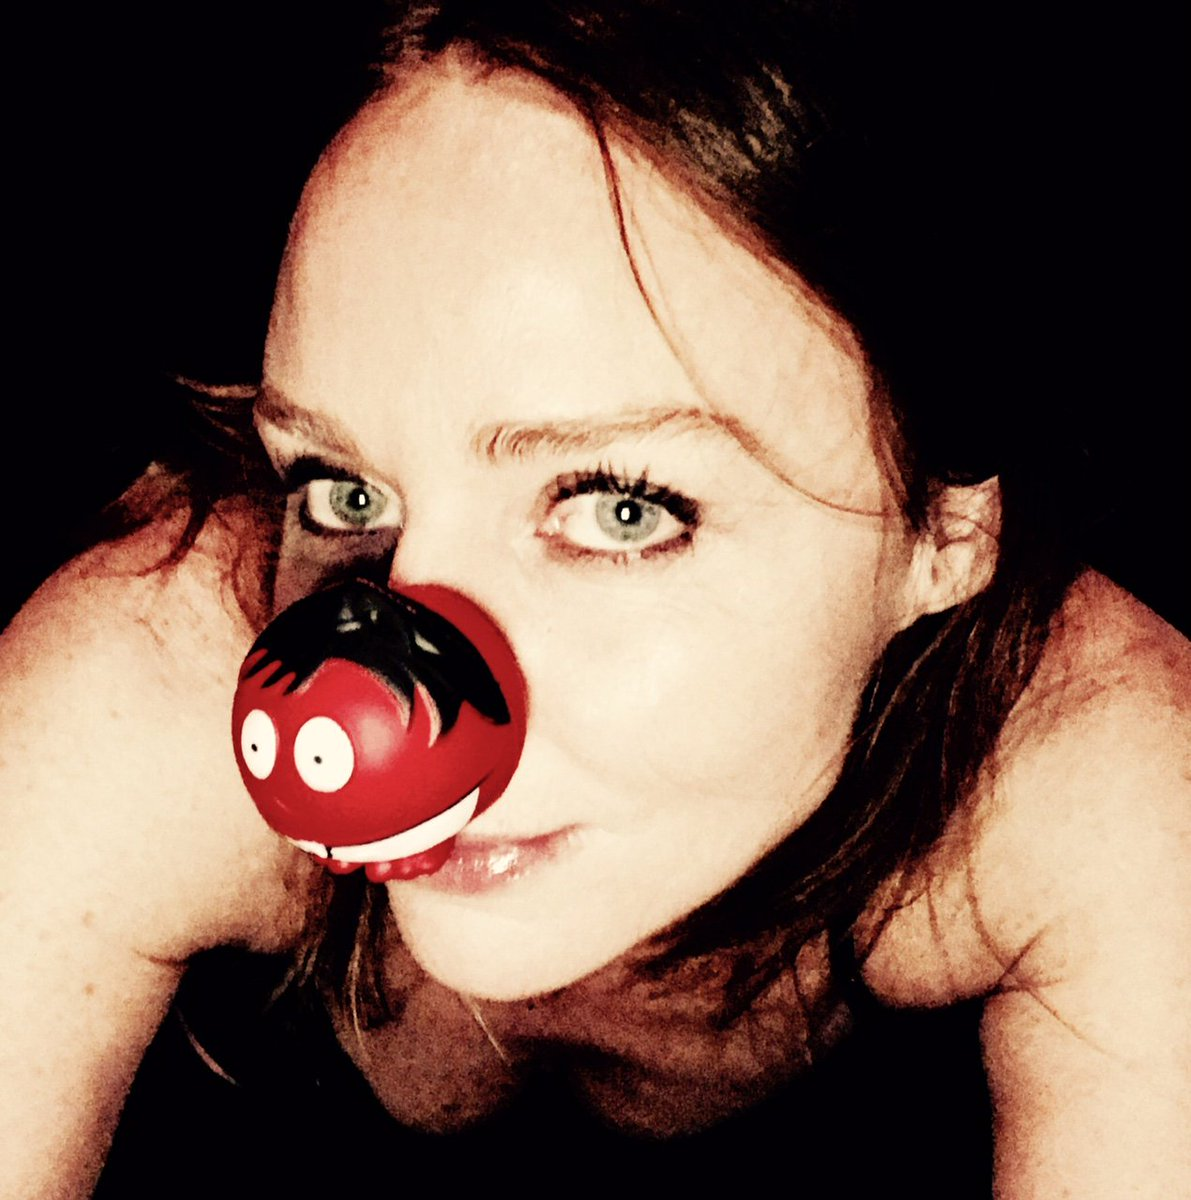 Those who know it's #RedNoseDay are in the know!! An incredible cause that you should support! x Stella https://t.co/JZBTy6Q85D